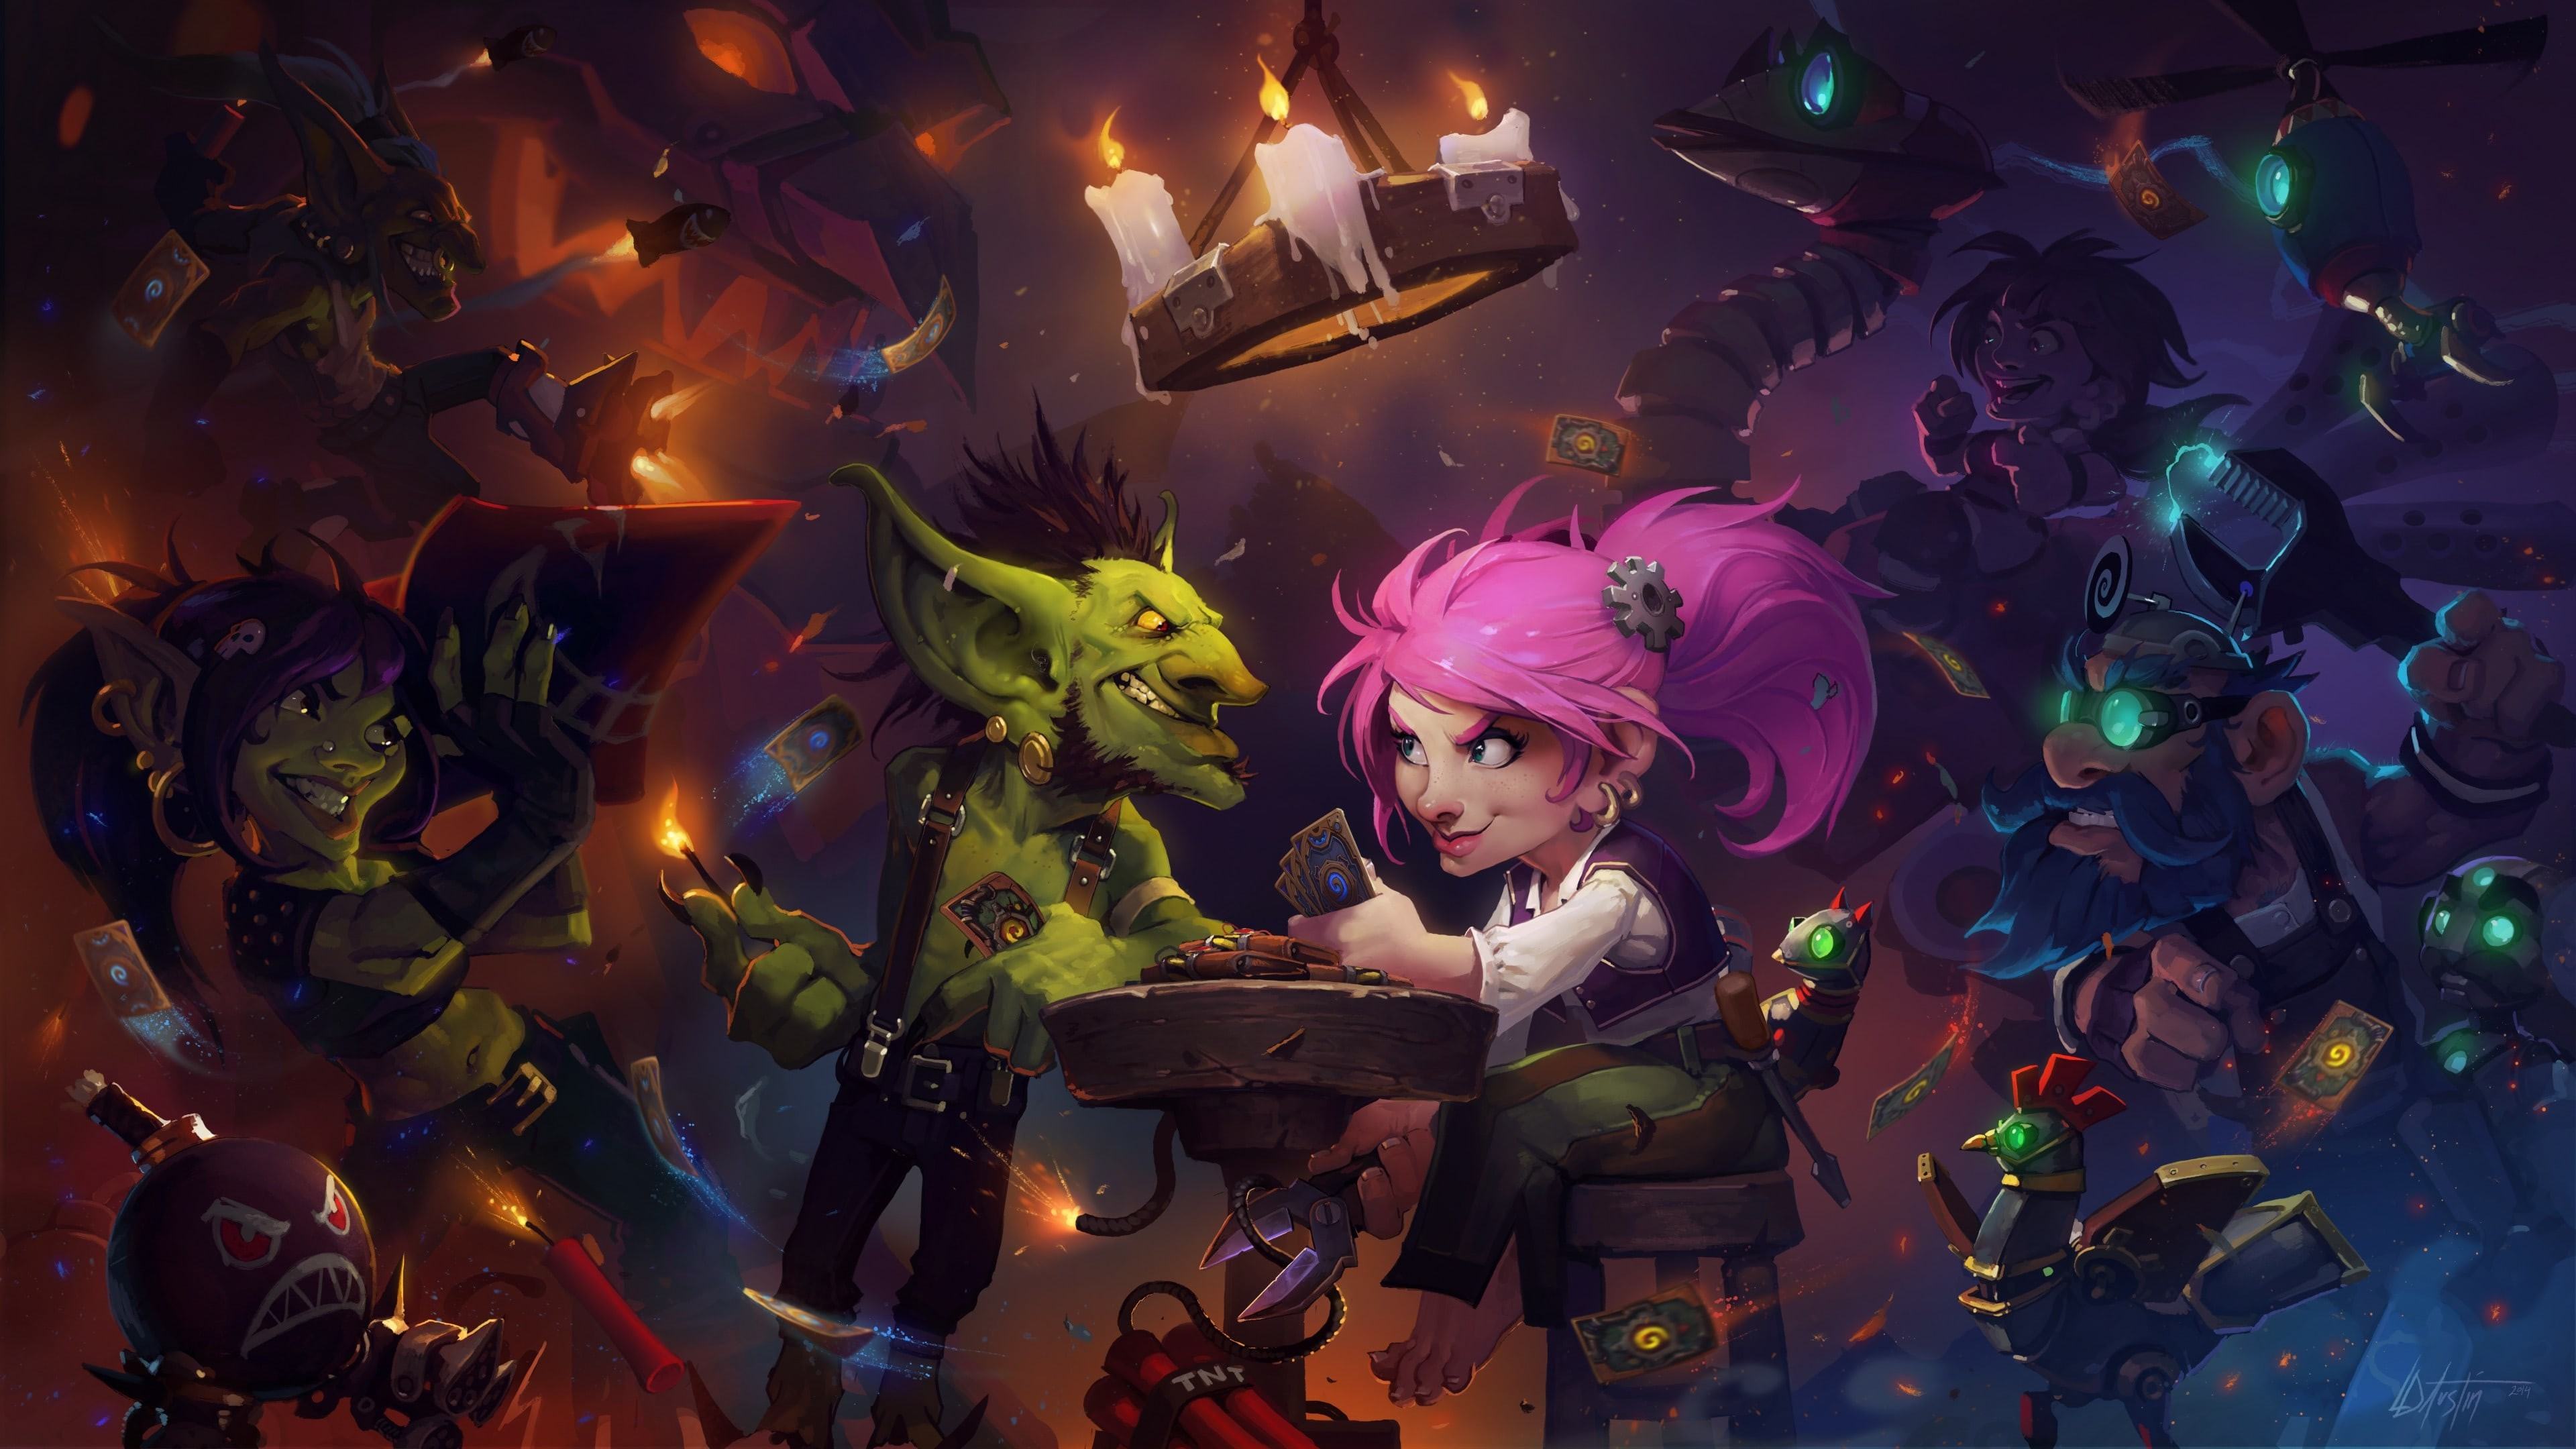 3840x2160 Wallpaper Hearthstone heroes warcraft game ccg dwarf troll goblin #894  CoolWallpapers.site